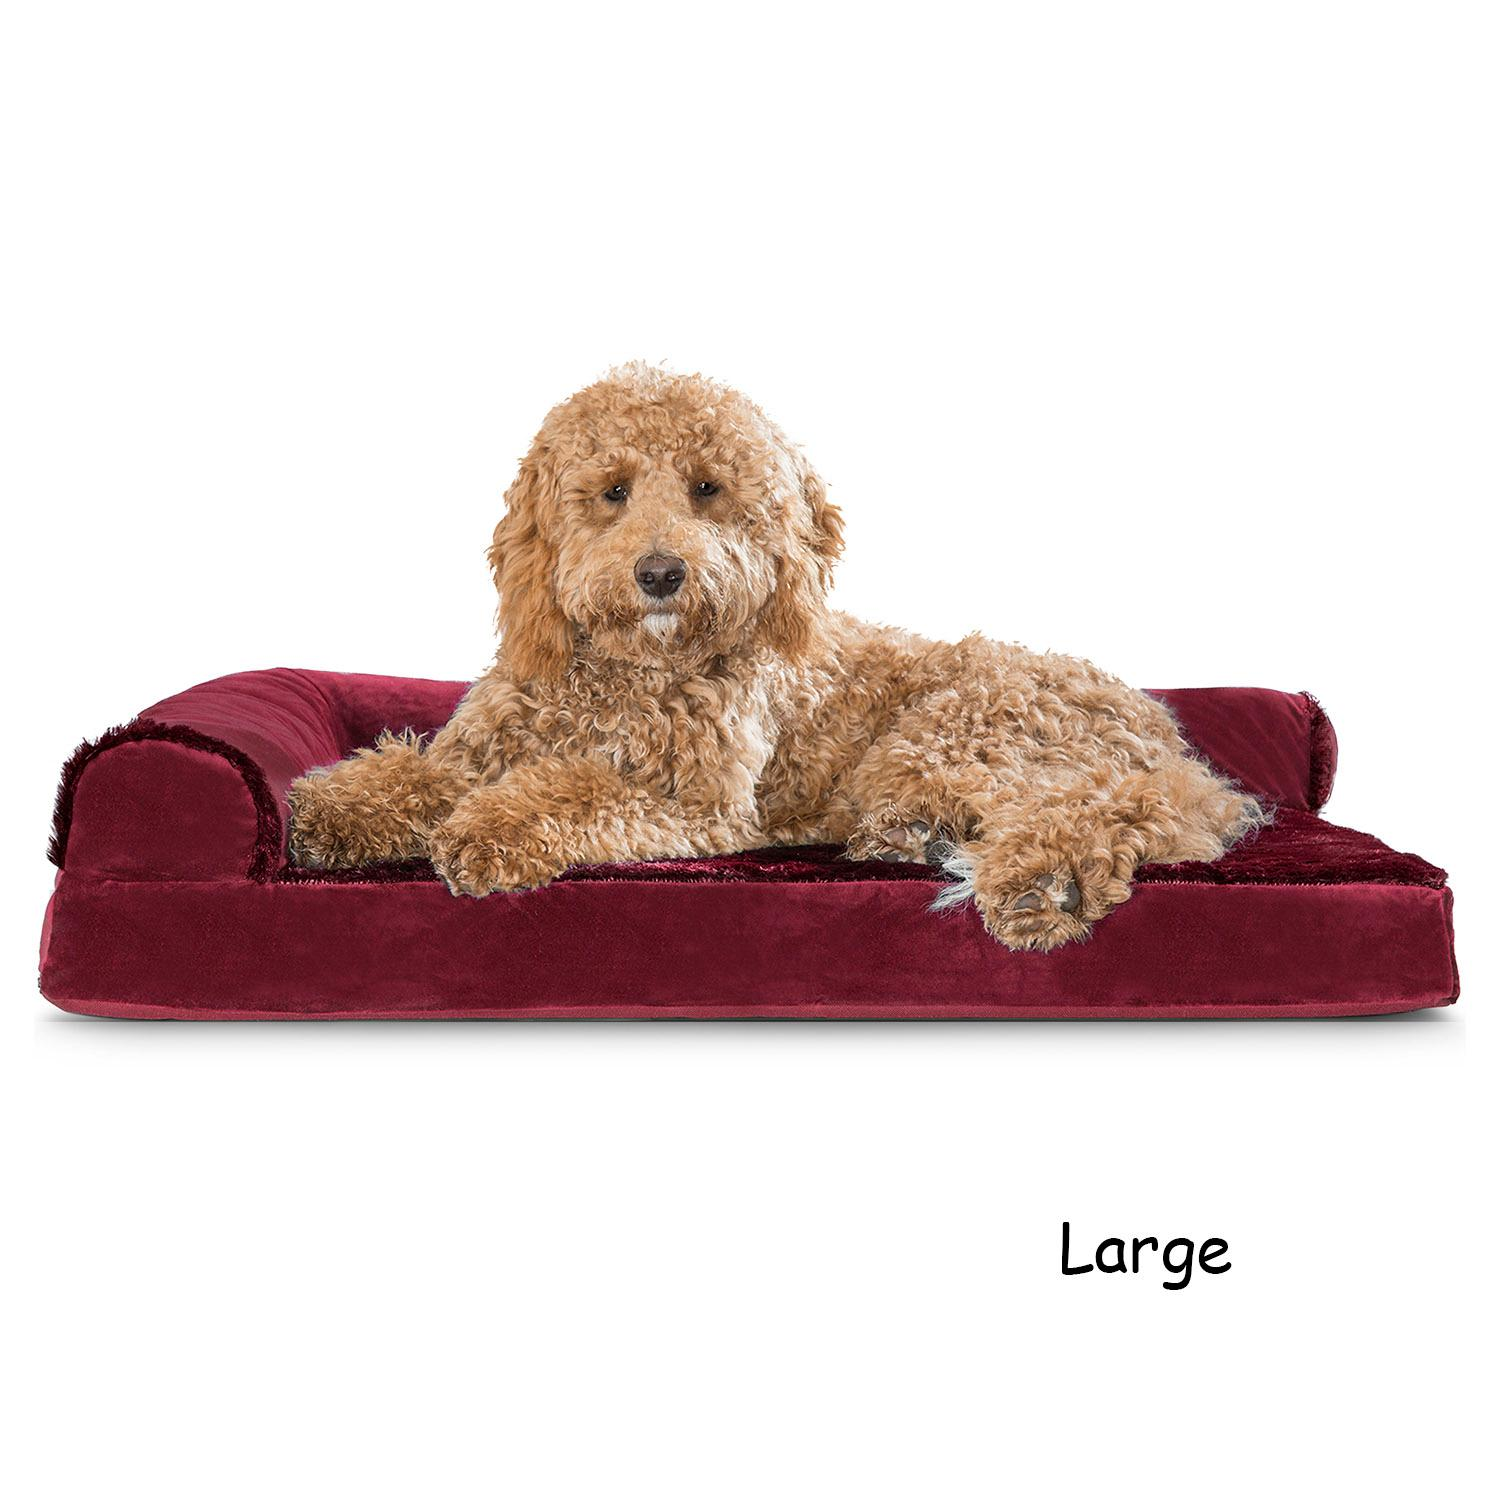 FurHaven Plush & Velvet Deluxe Chaise Lounge Orthopedic Sofa-Style Dog Bed - Merlot Red